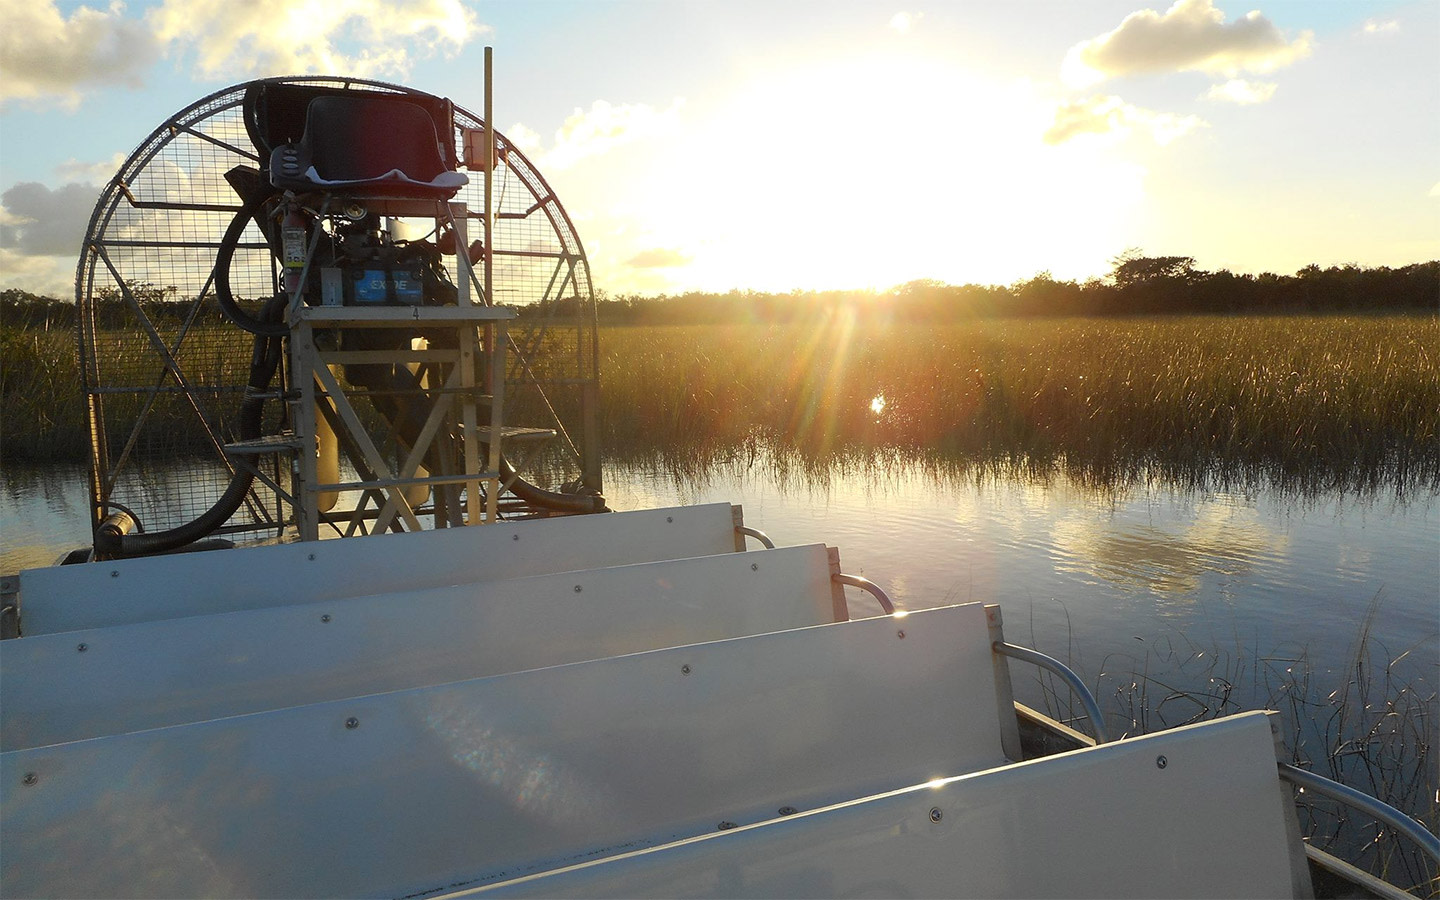 Airboat docked